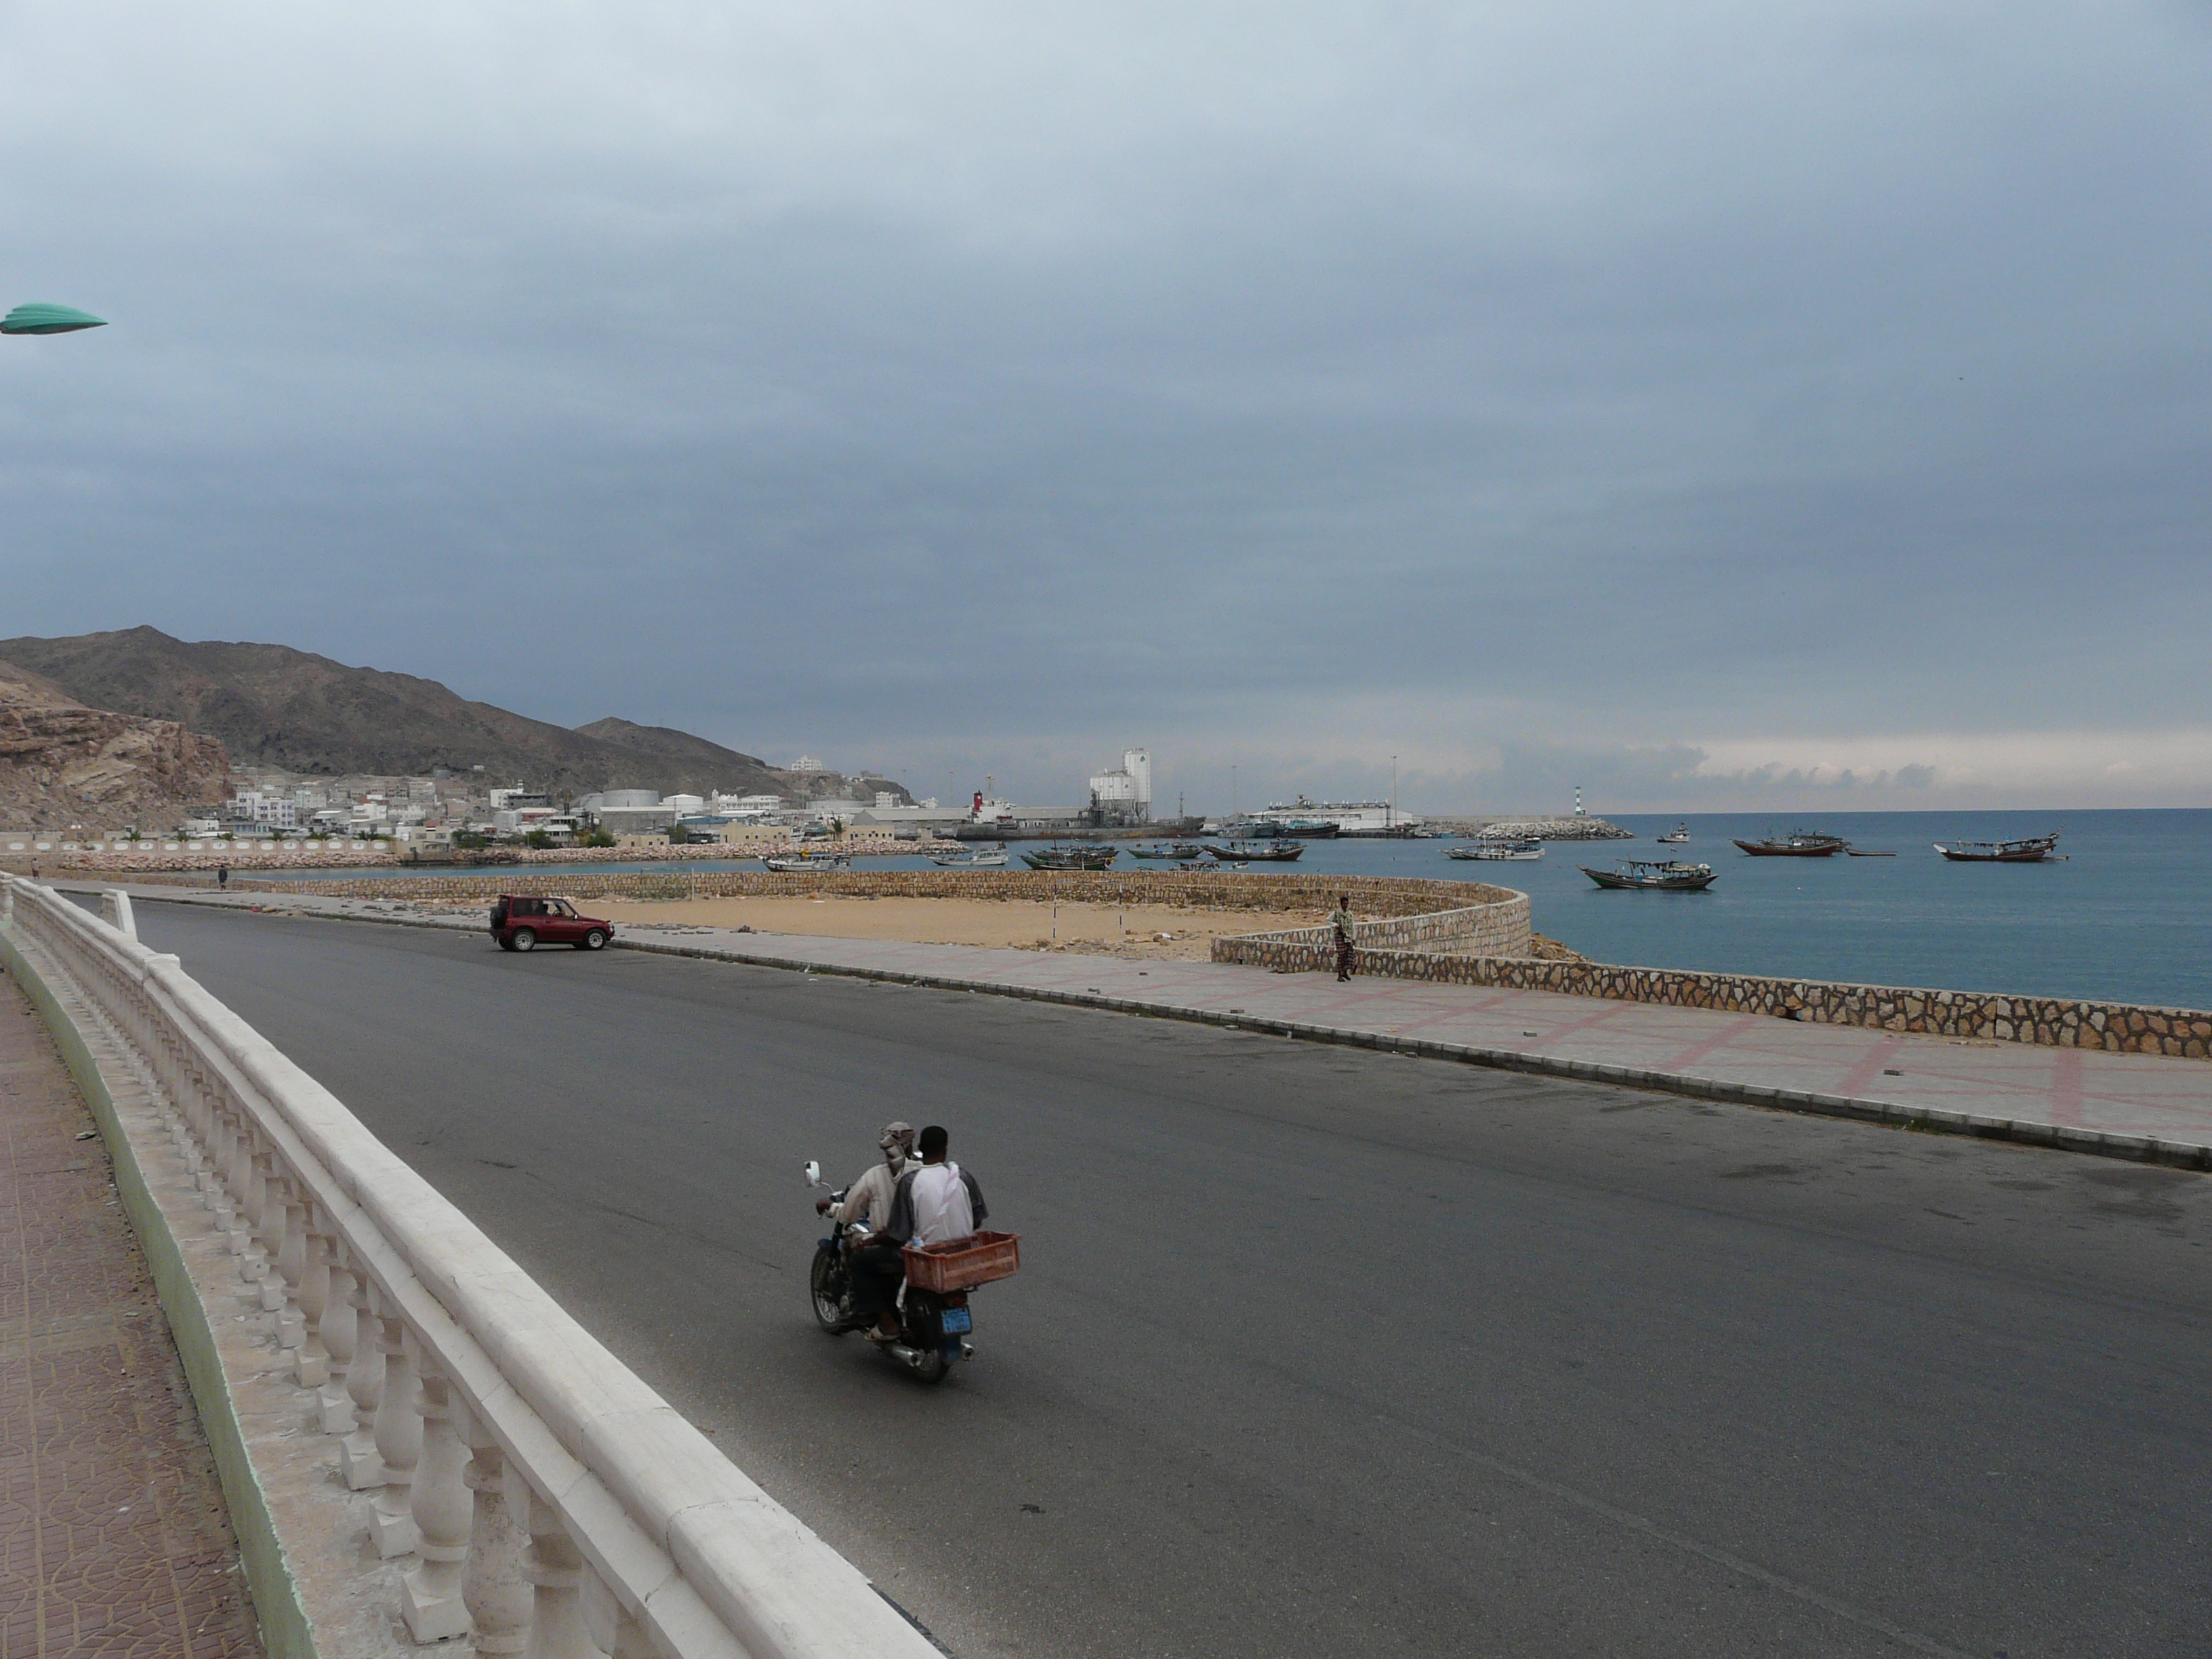 Mukalla port (Yemen). View from the route between port and town, which named Khalf Street. Cement carrier